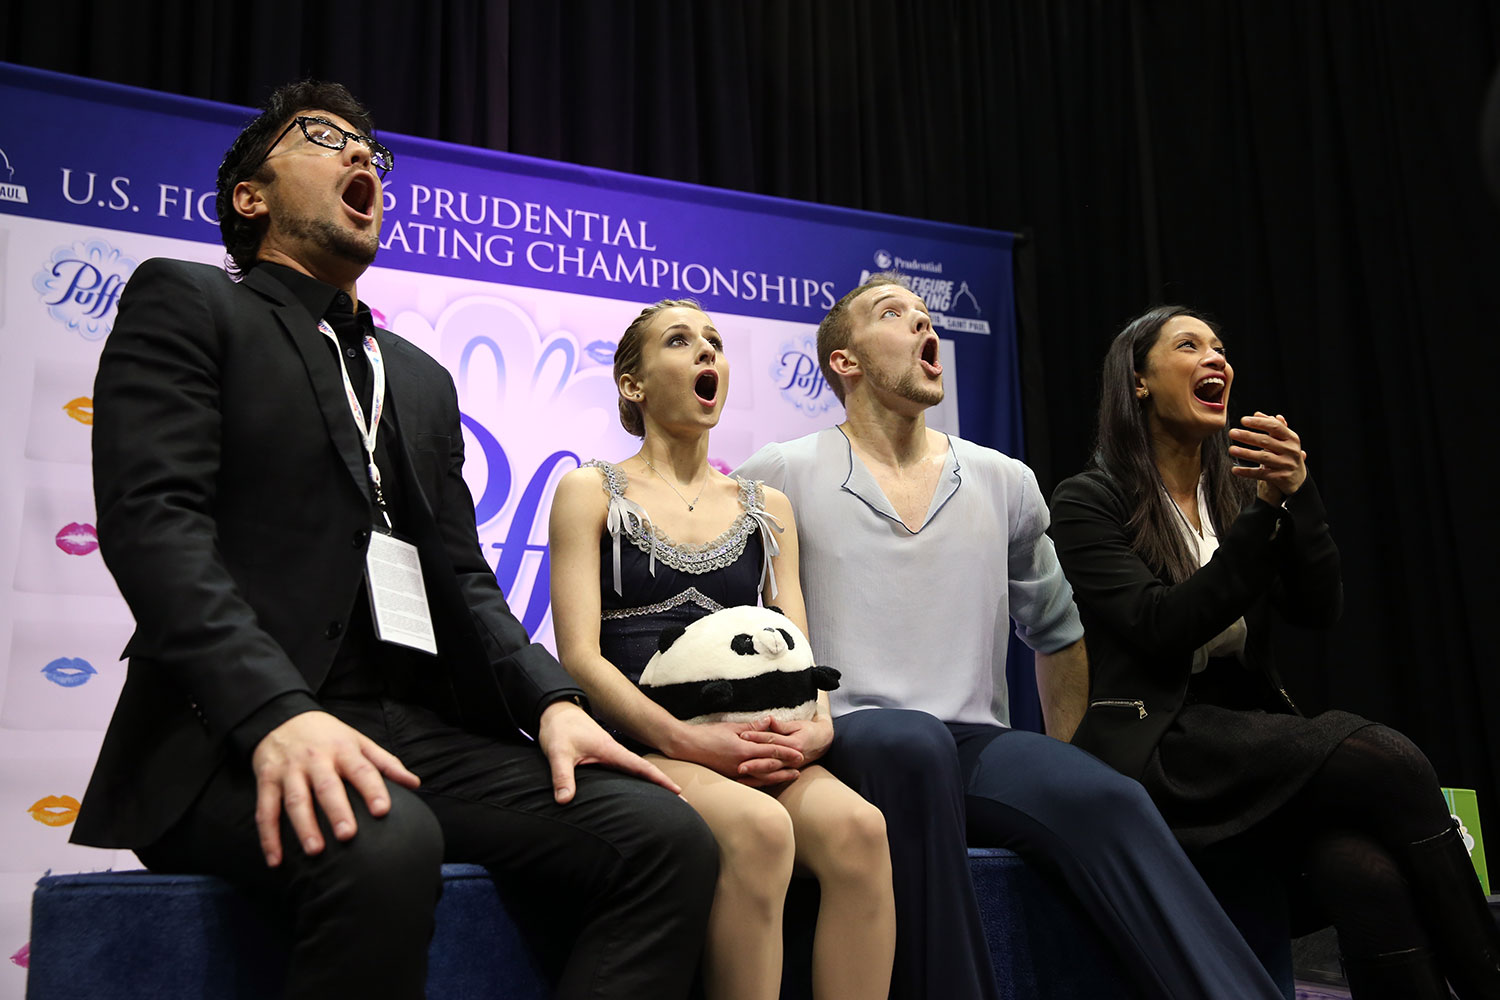 Skaters Tarah Kayne (with stuffed animal) and Daniel O'Shea and their coaches Jim Peterson (far left) and Amanda Evora,react with shock and delight over their personal-best score in the pairs free skate. (U.S. Figure Skating / Jay Adeff)